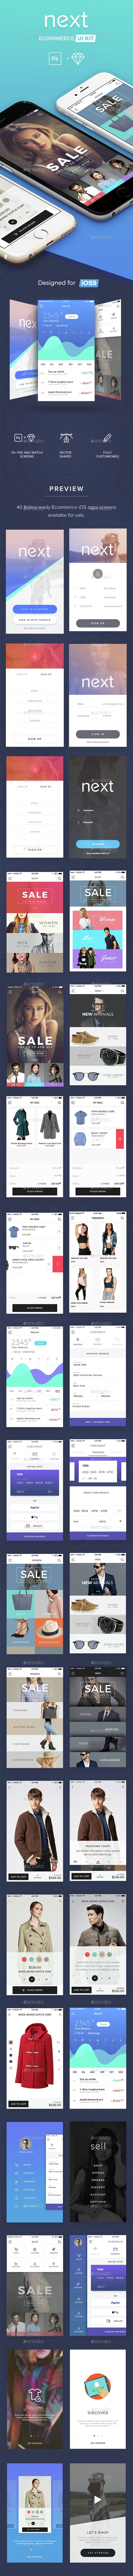 Next E-commerce UI Kit (User Interfaces)